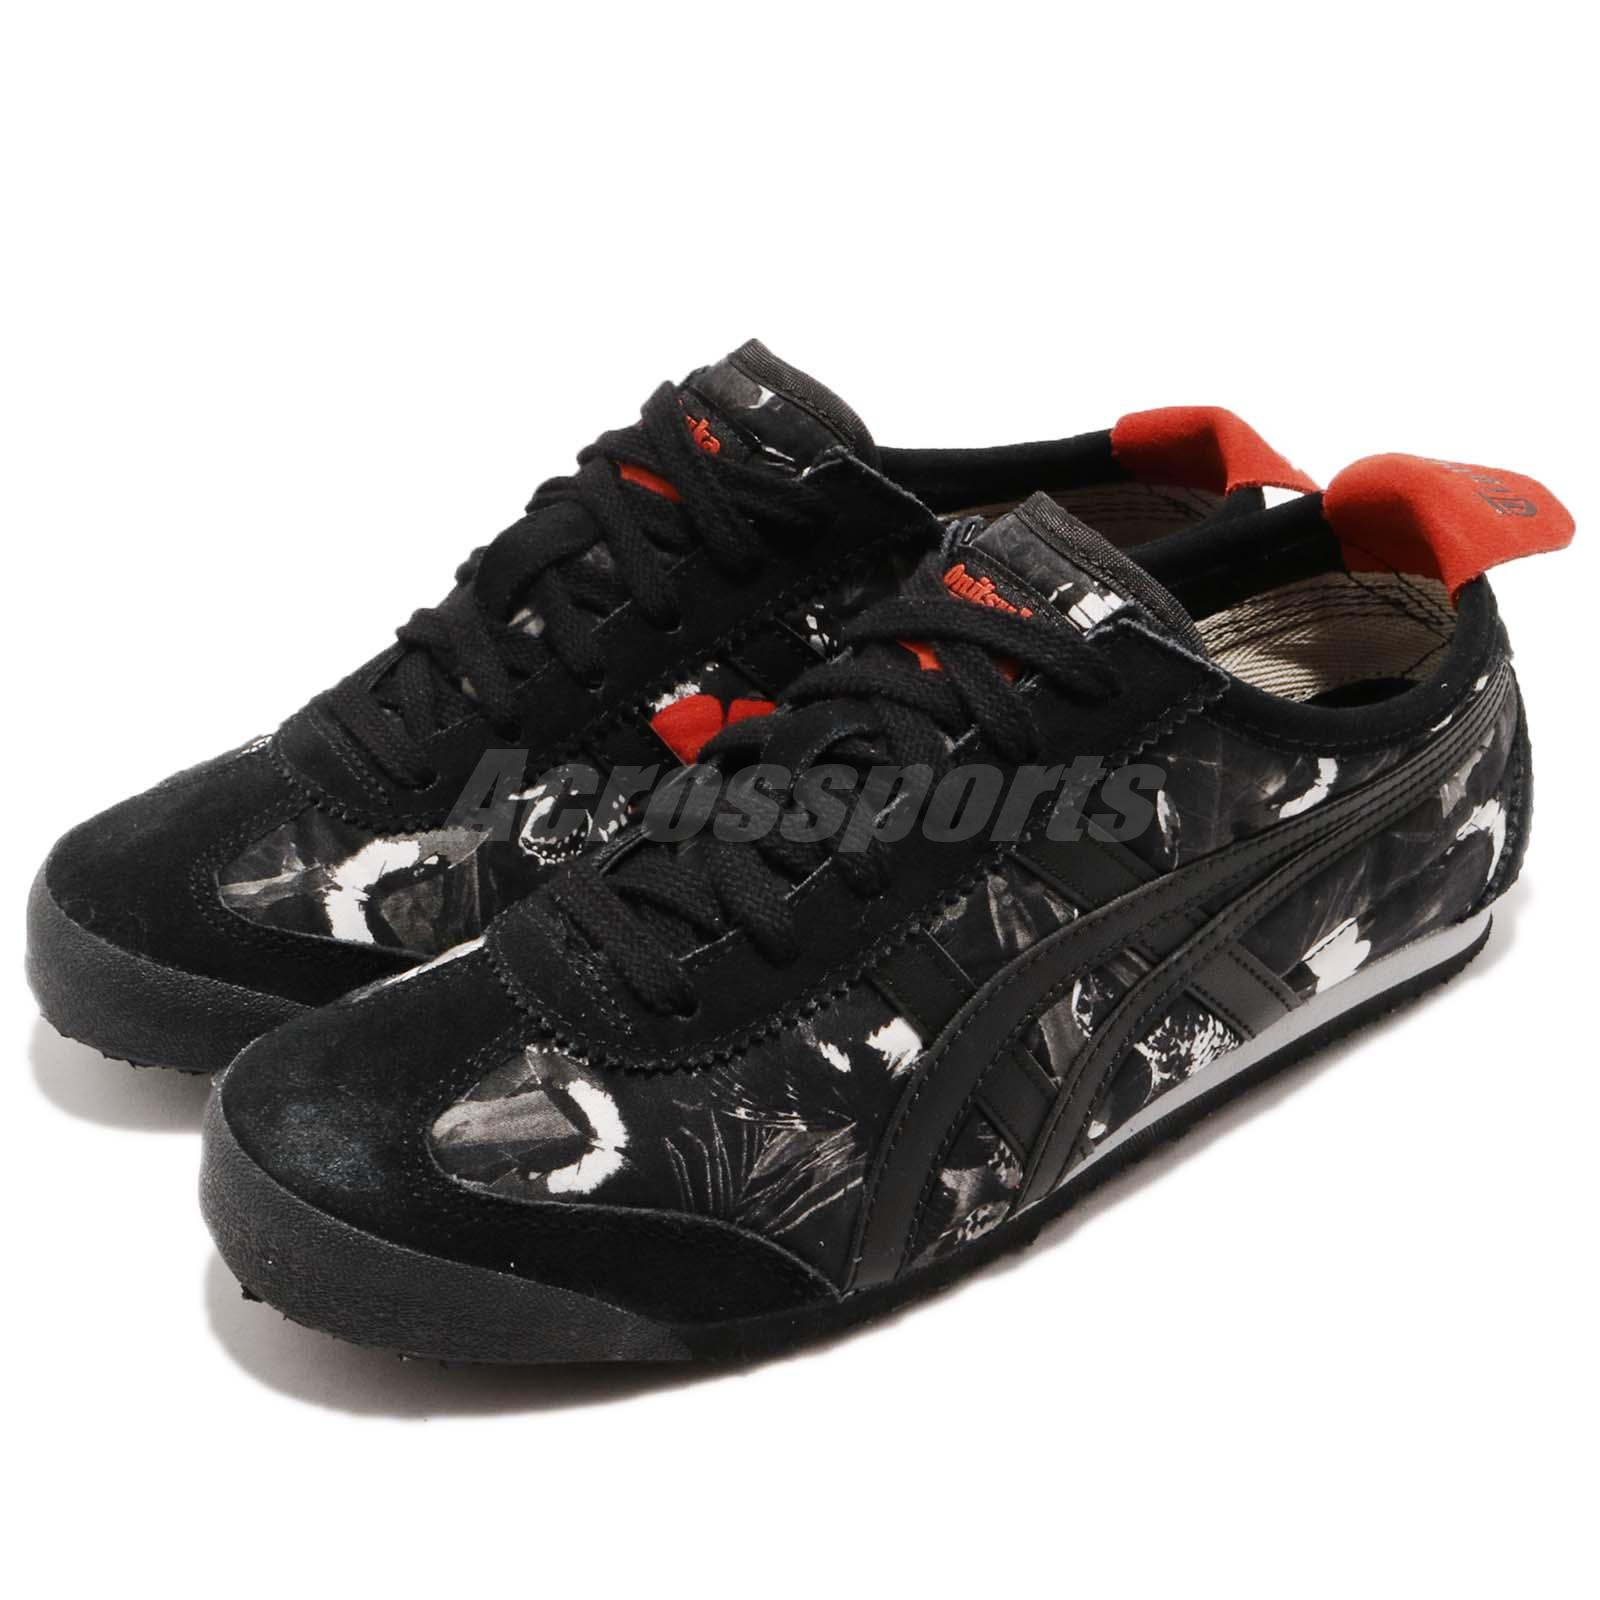 reputable site 81b90 b9f1f Details about Asics Onitsuka Tiger Mexico 66 Black Red White Women Running  Shoes D7G8N-9090